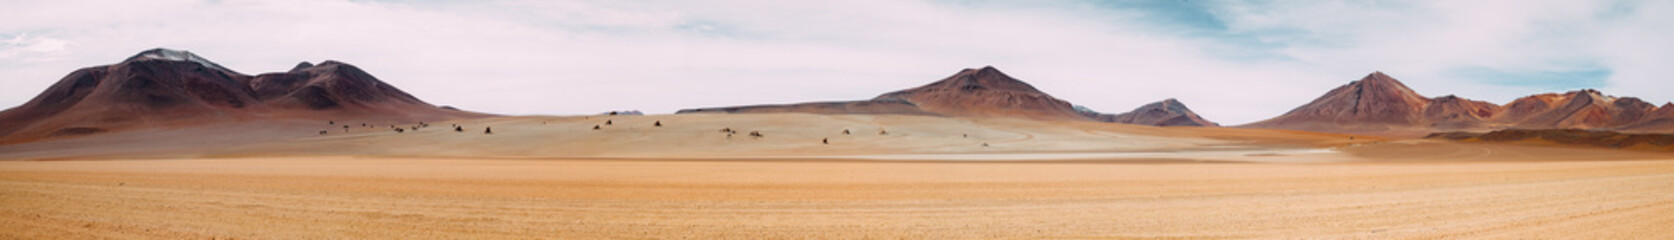 In de dag Zandwoestijn The vast expanse of nothingness - Atacama Desert - Bolivia